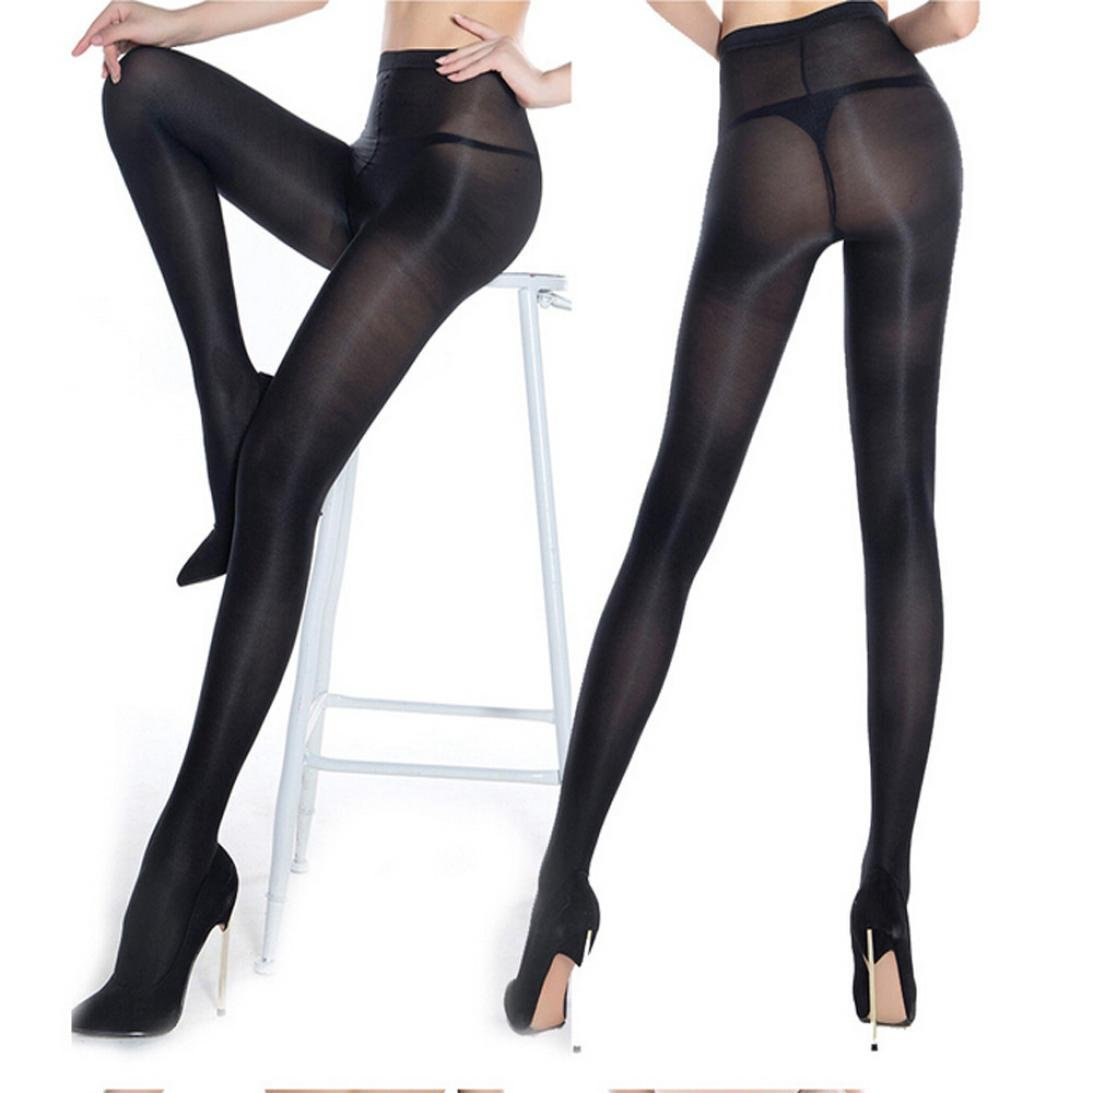 a8e896df1adf8 Amazon.com  Women s Pantyhose